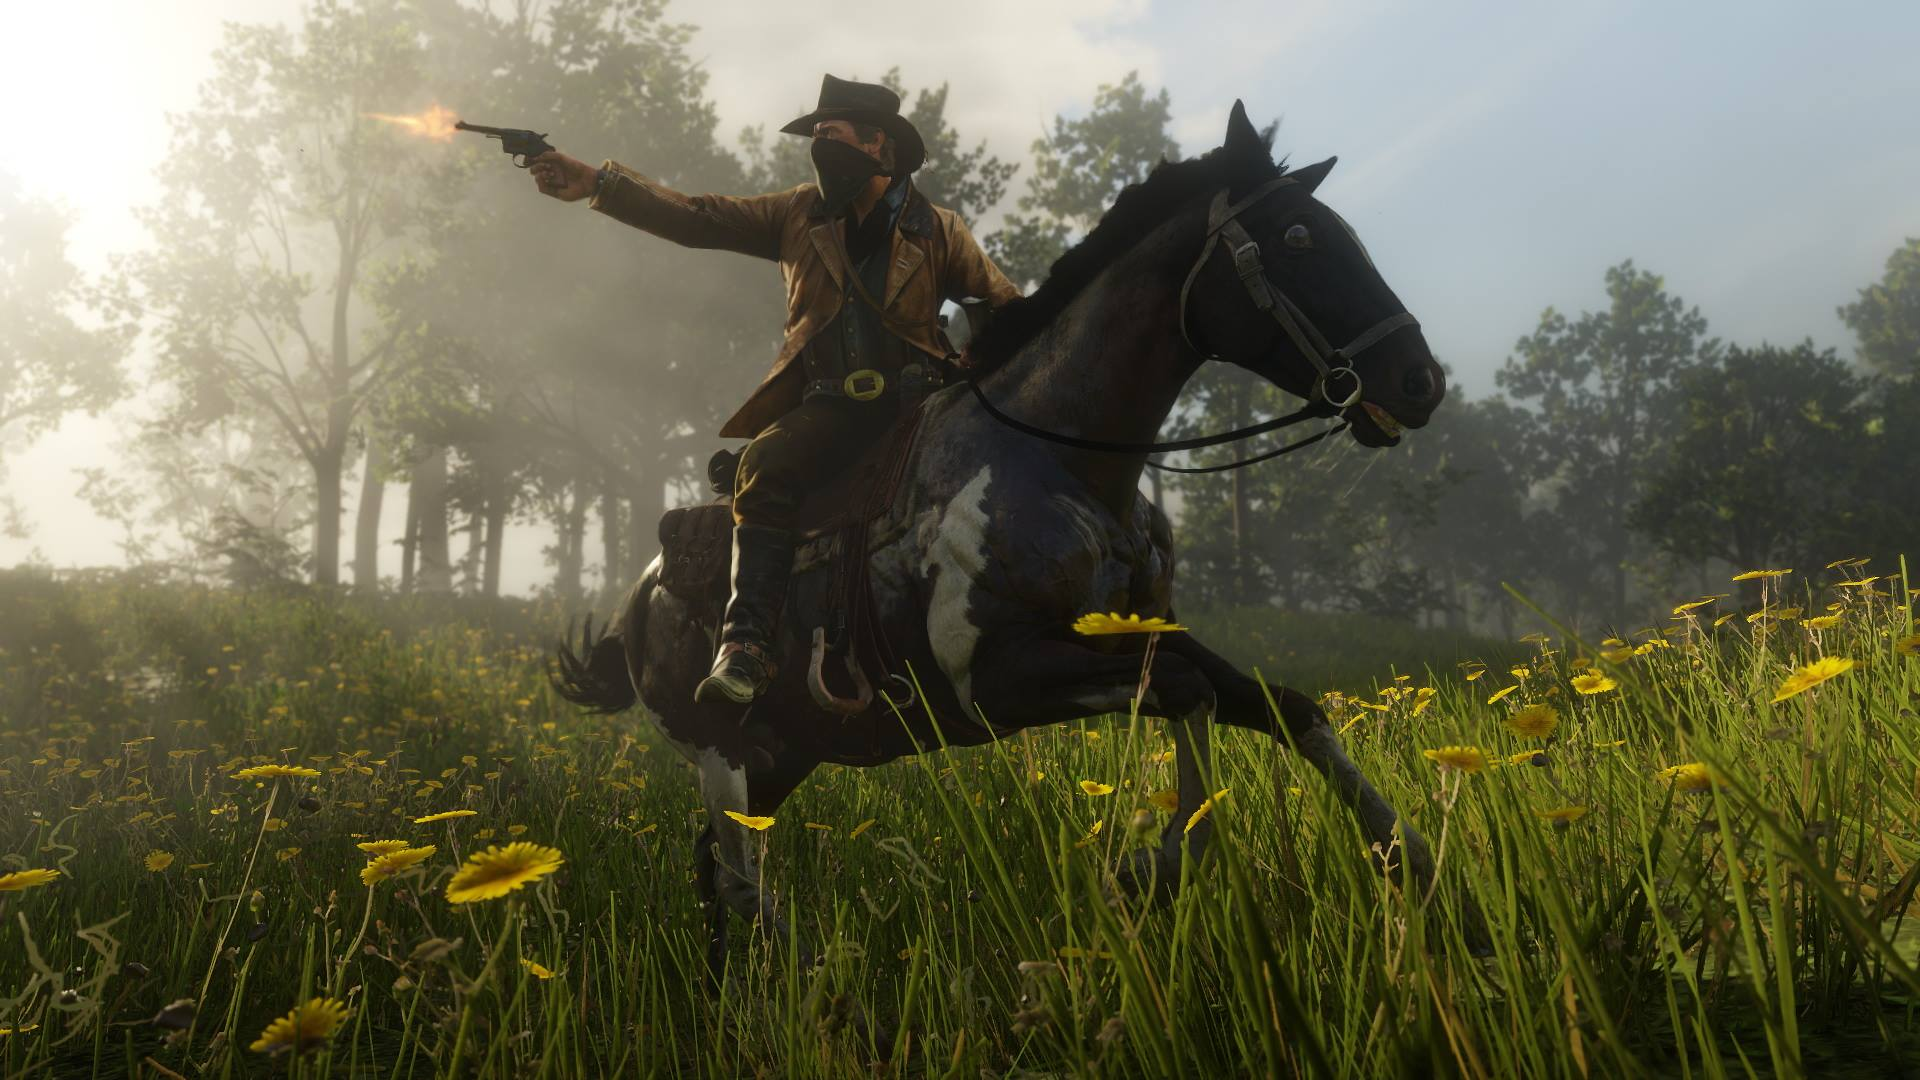 Red Dead Redemption 2 Companion App Files Hint at PC Version